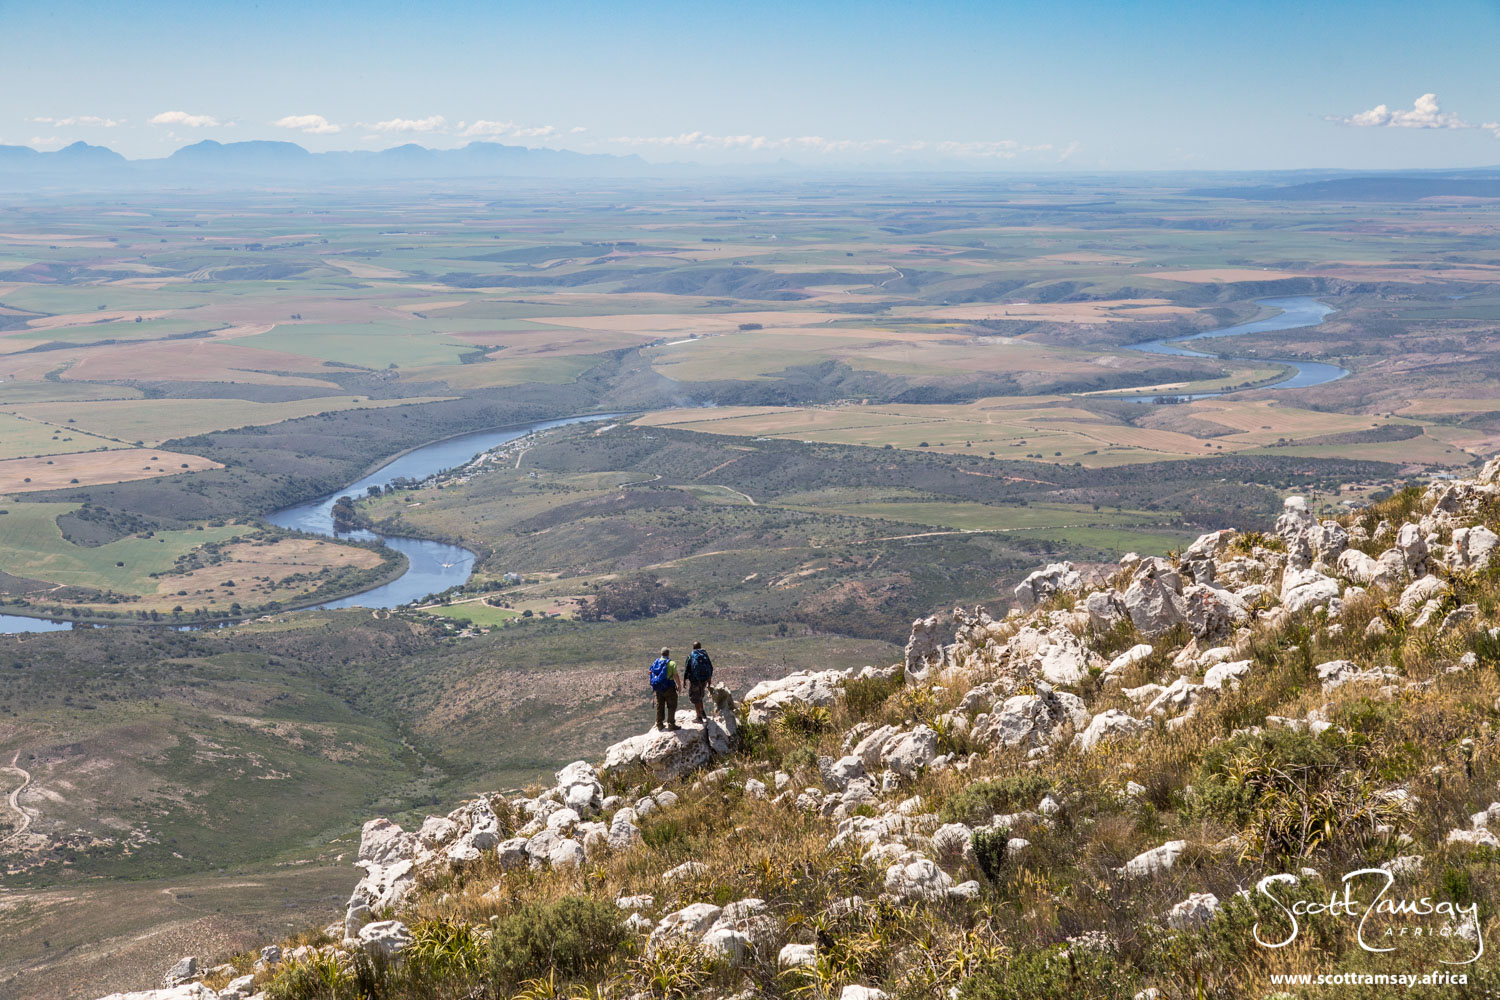 Looking out from the top of Potberg mountains ver the wheatfields of the Overberg near the southern tip of Africa. The Breede River below is full from a wet winter.